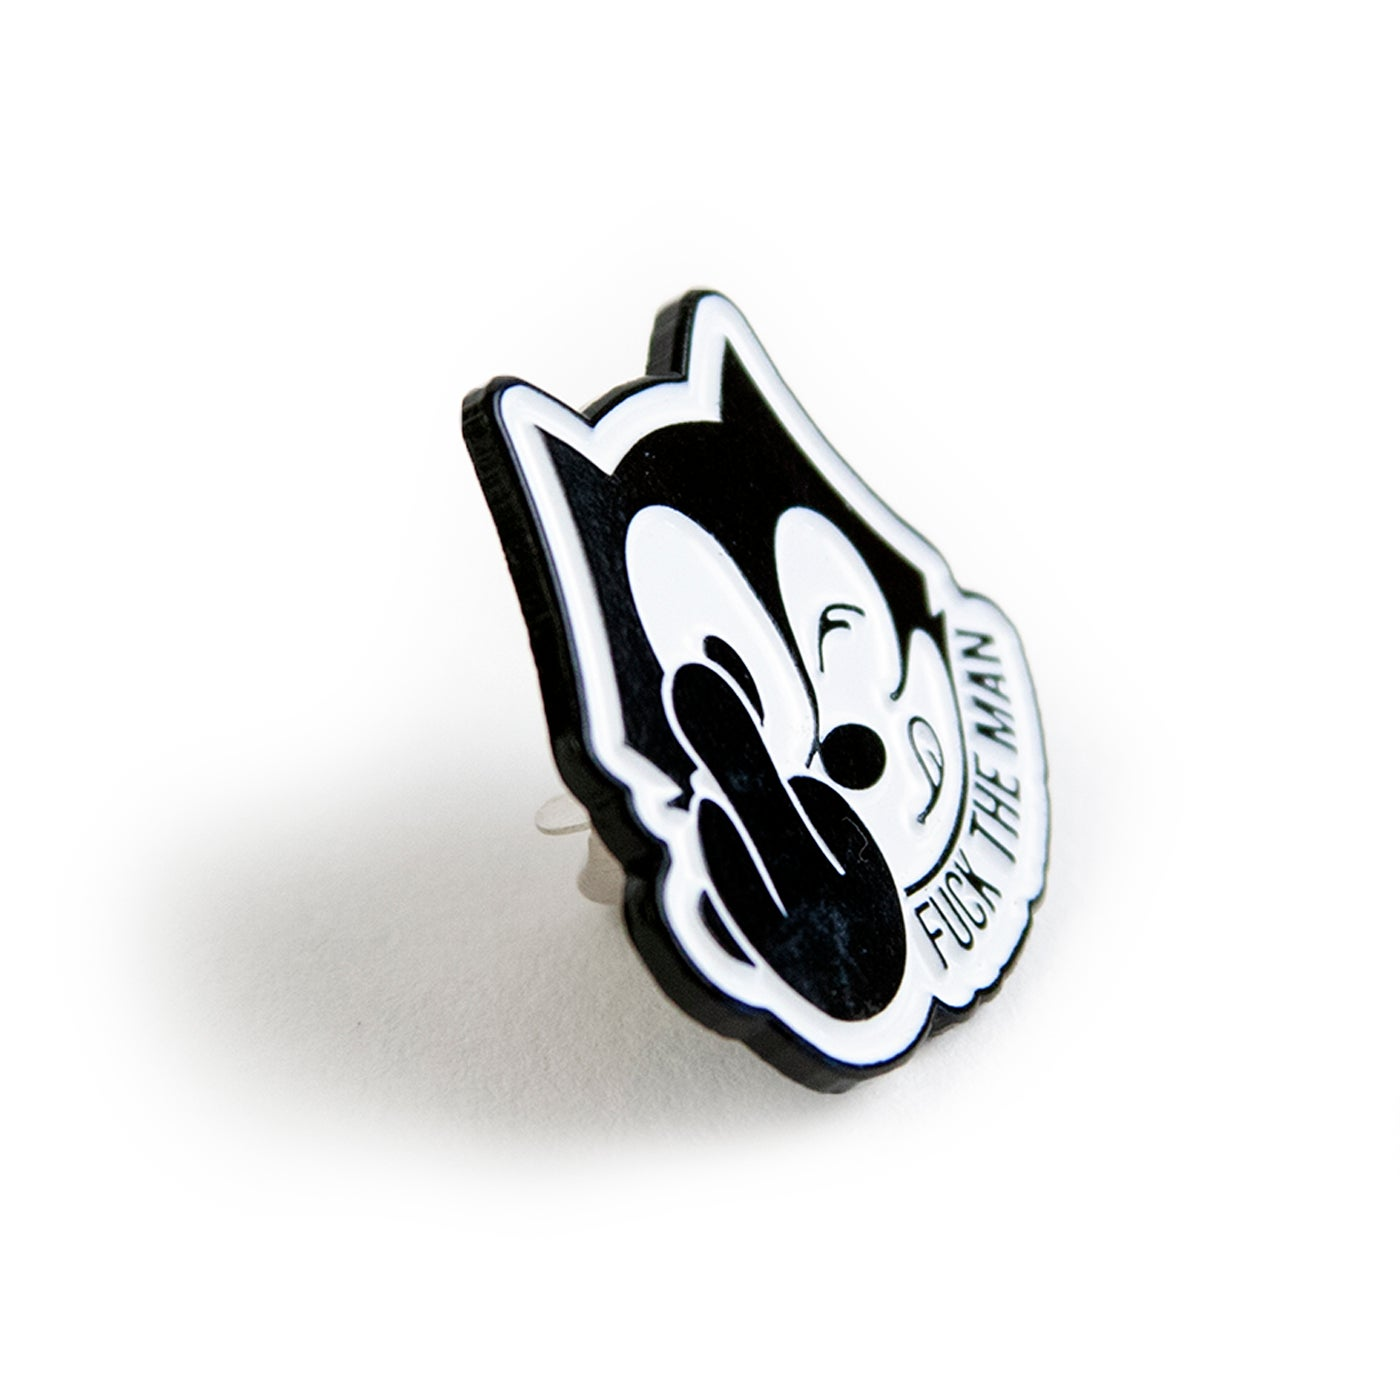 Image of FELIX THE MAN PIN BADGE